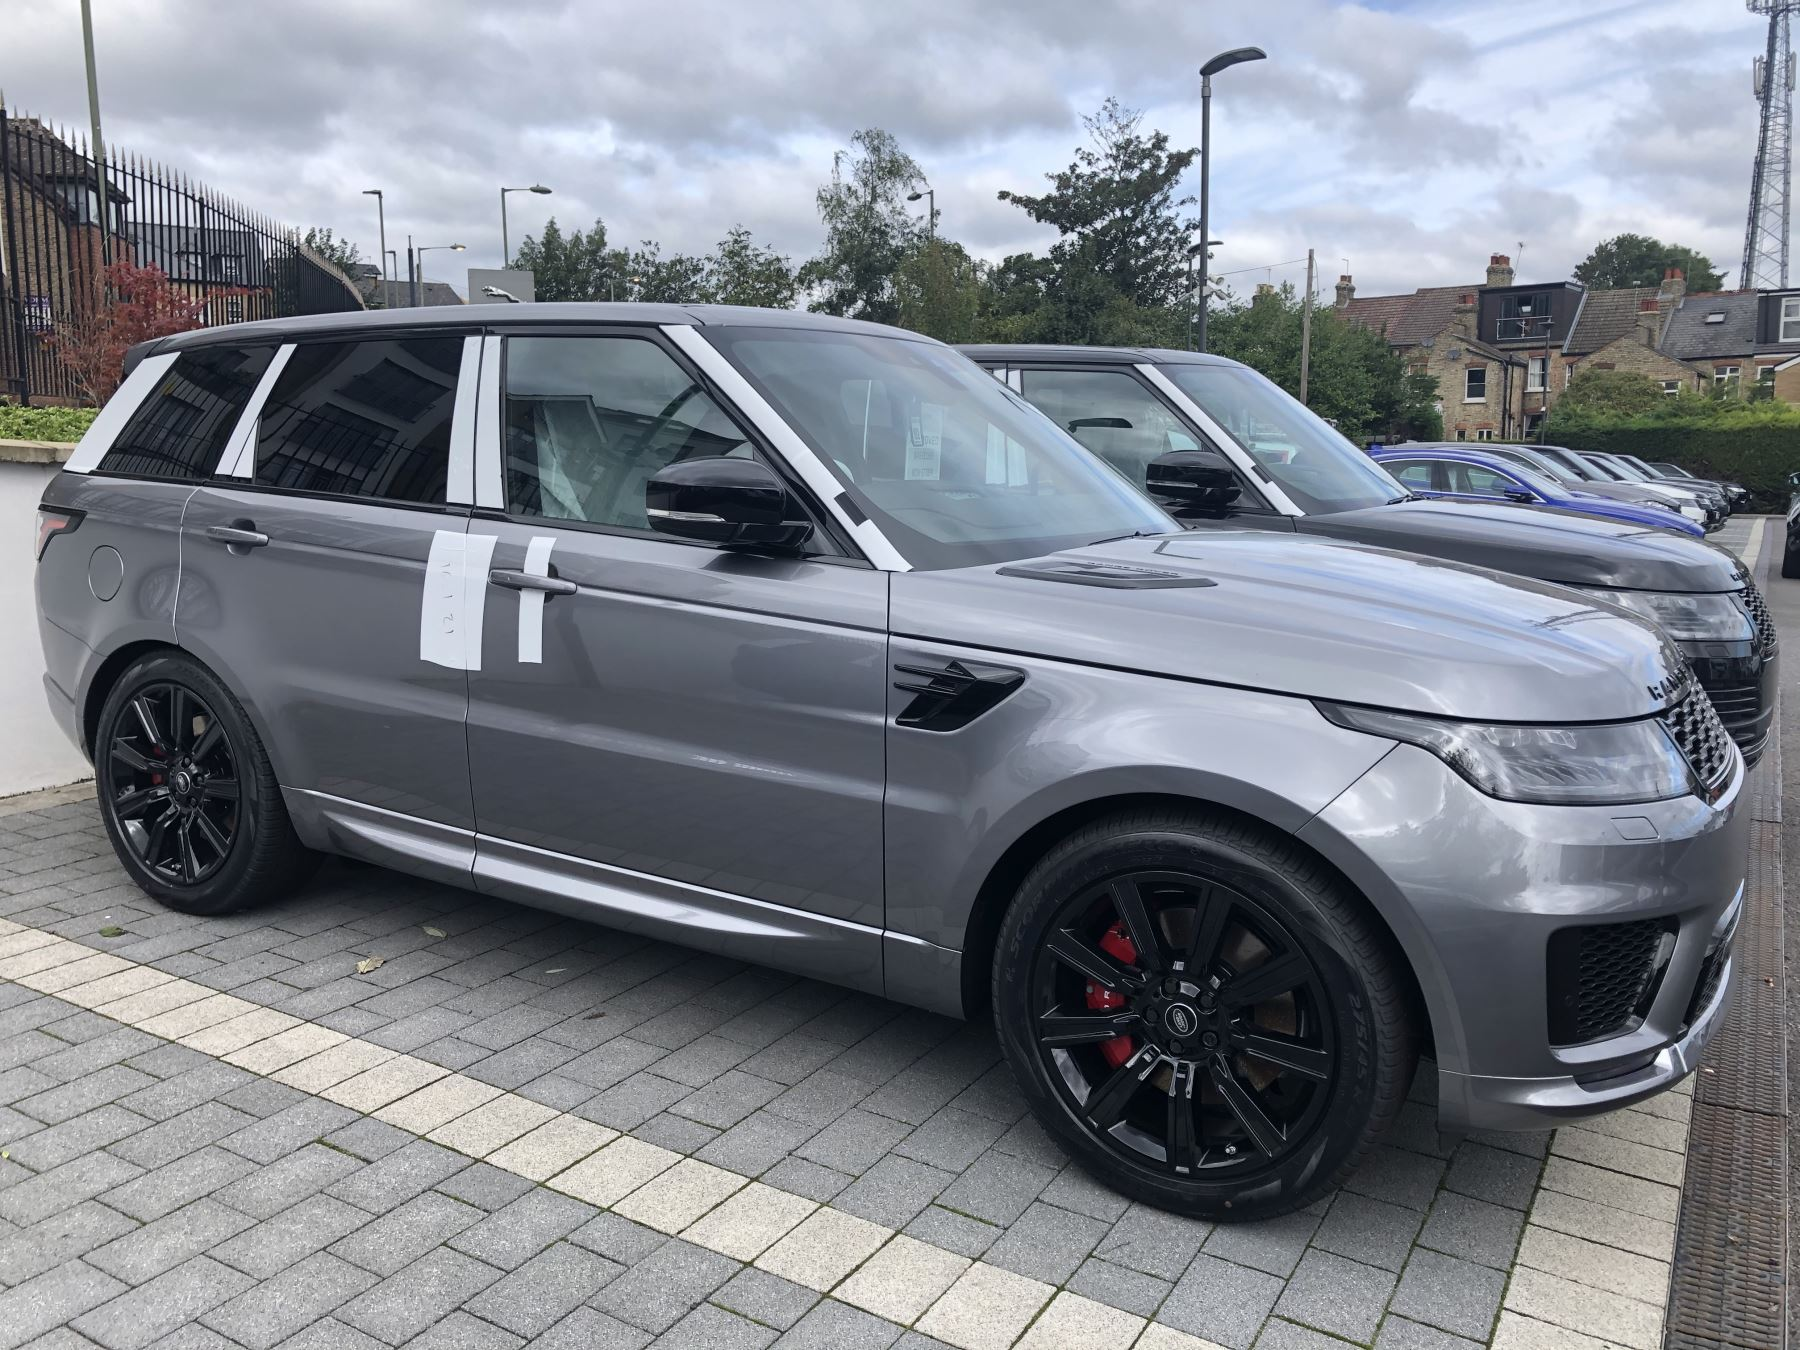 Land Rover Range Rover Sport 2.0 P400e HSE Dynamic Petrol/Electric Automatic 5 door Estate